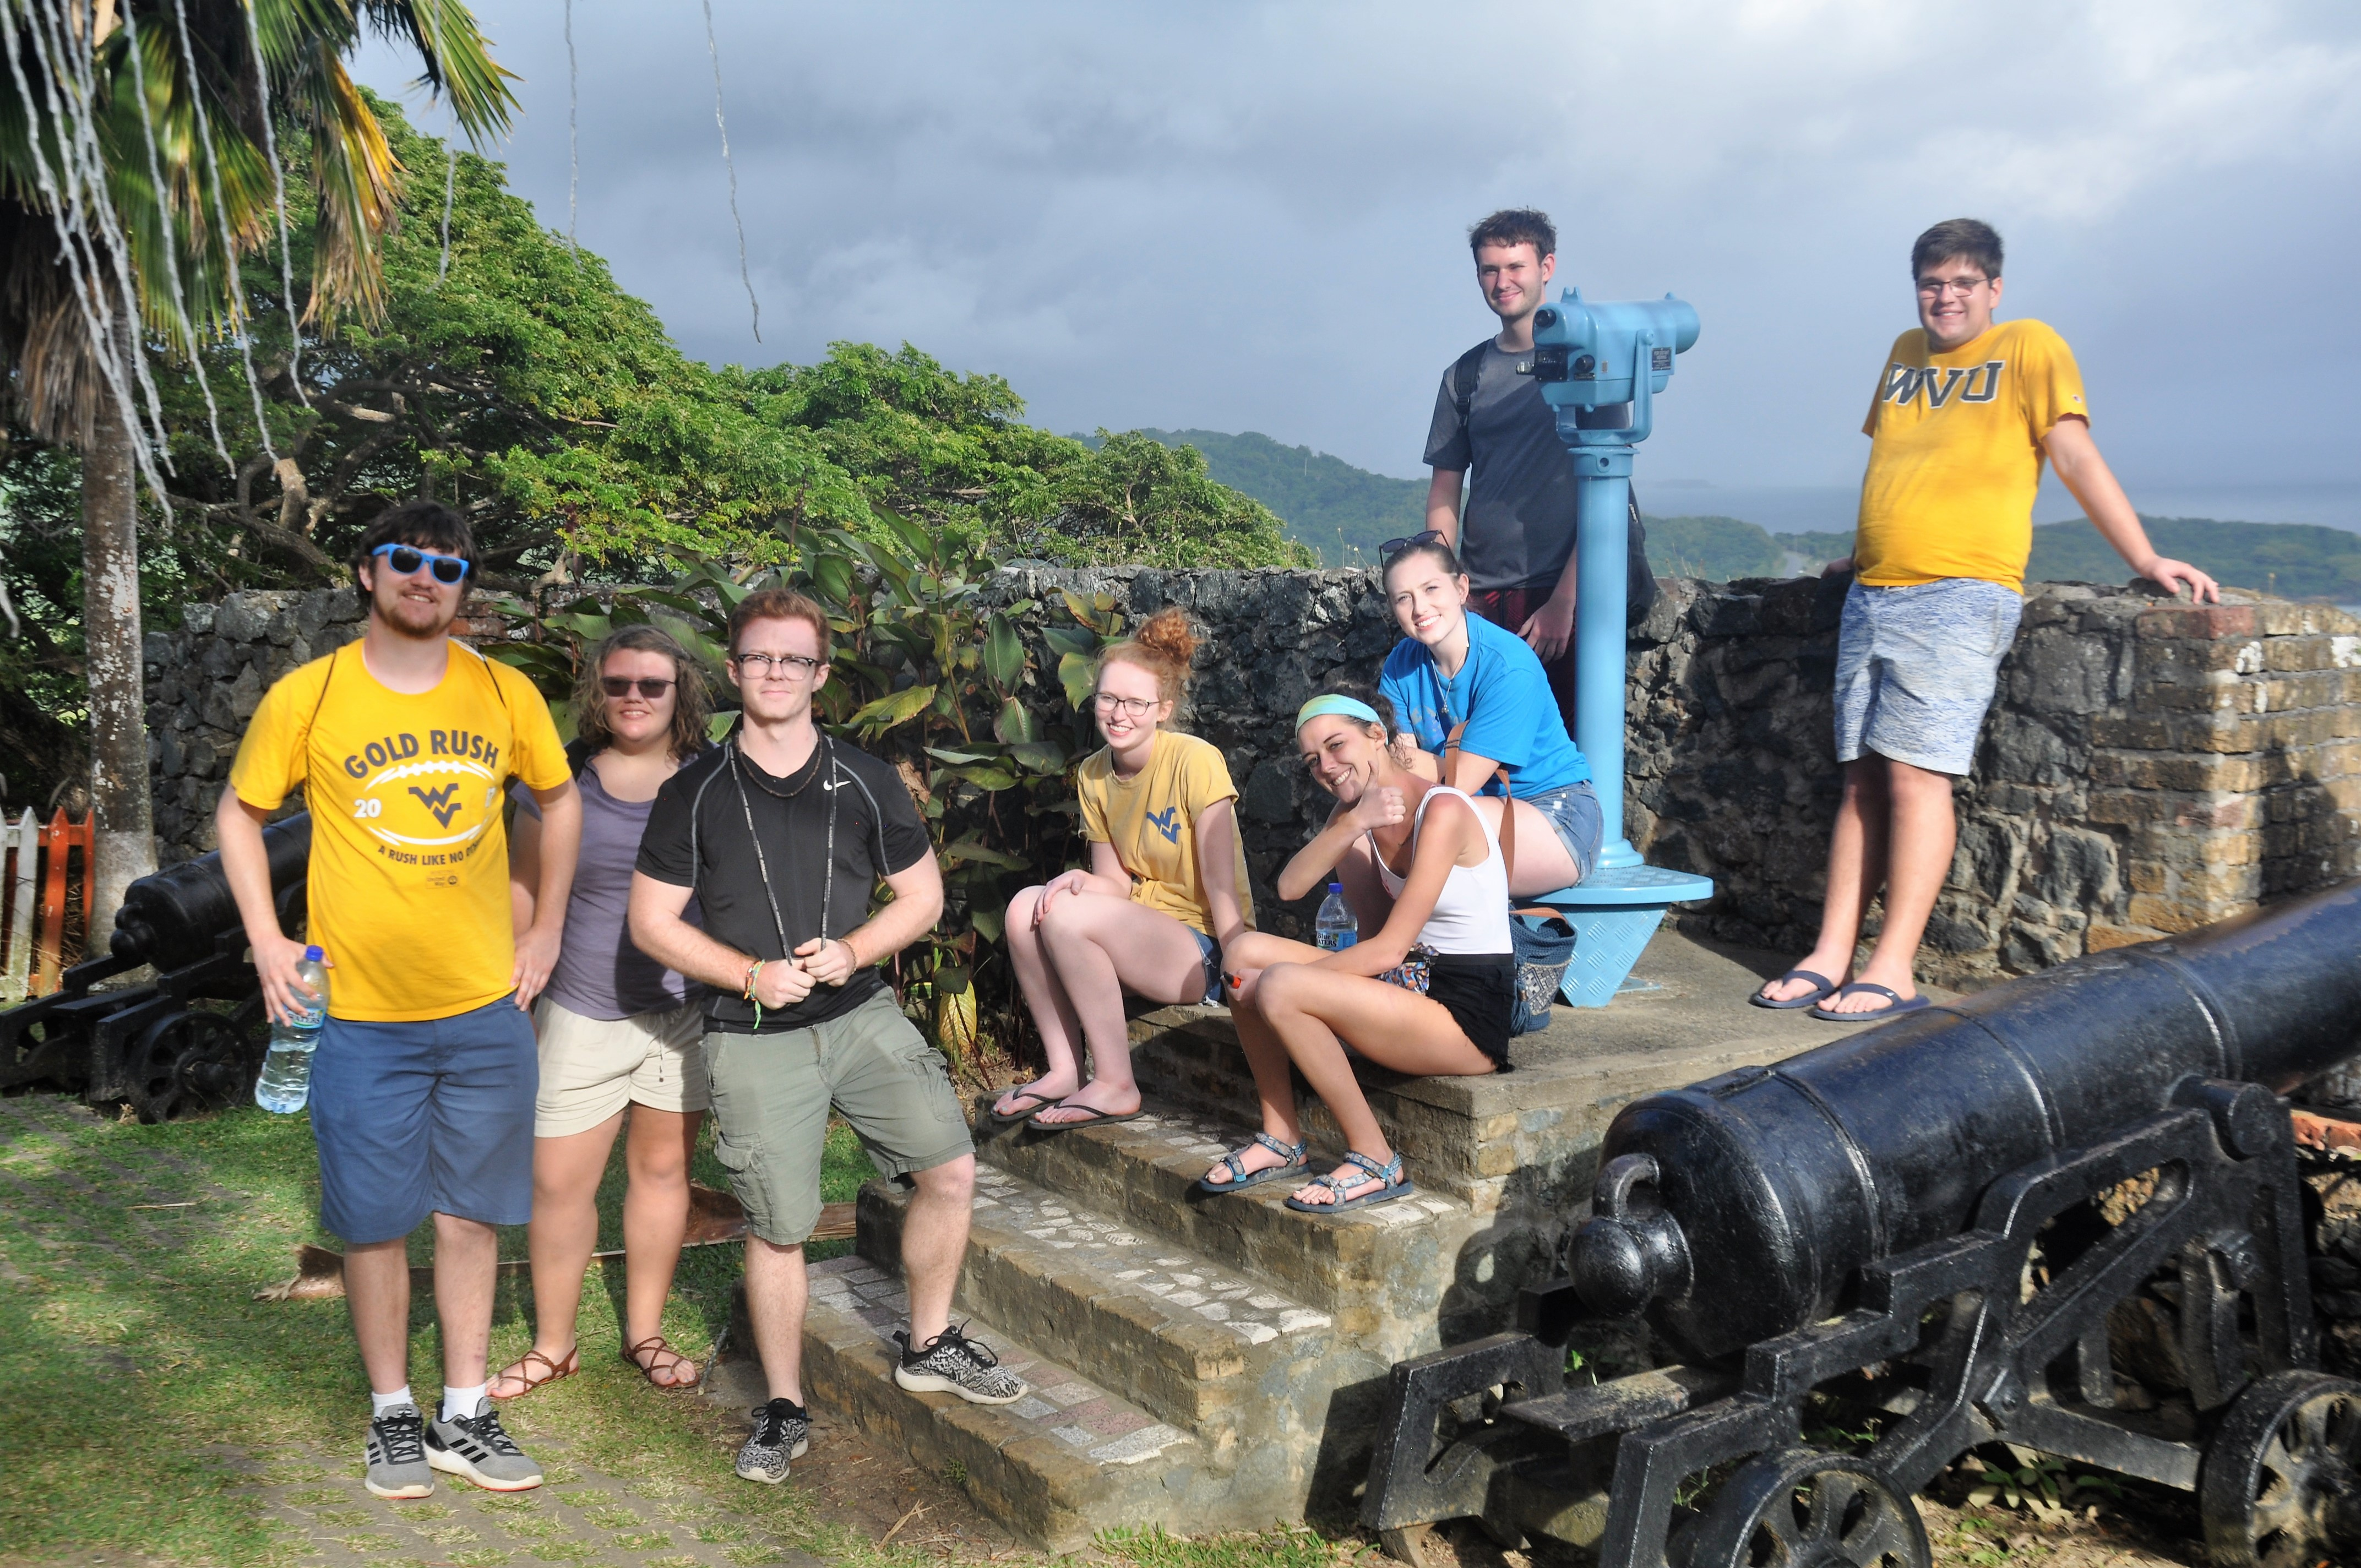 Students exploring a historical site of Trinidad